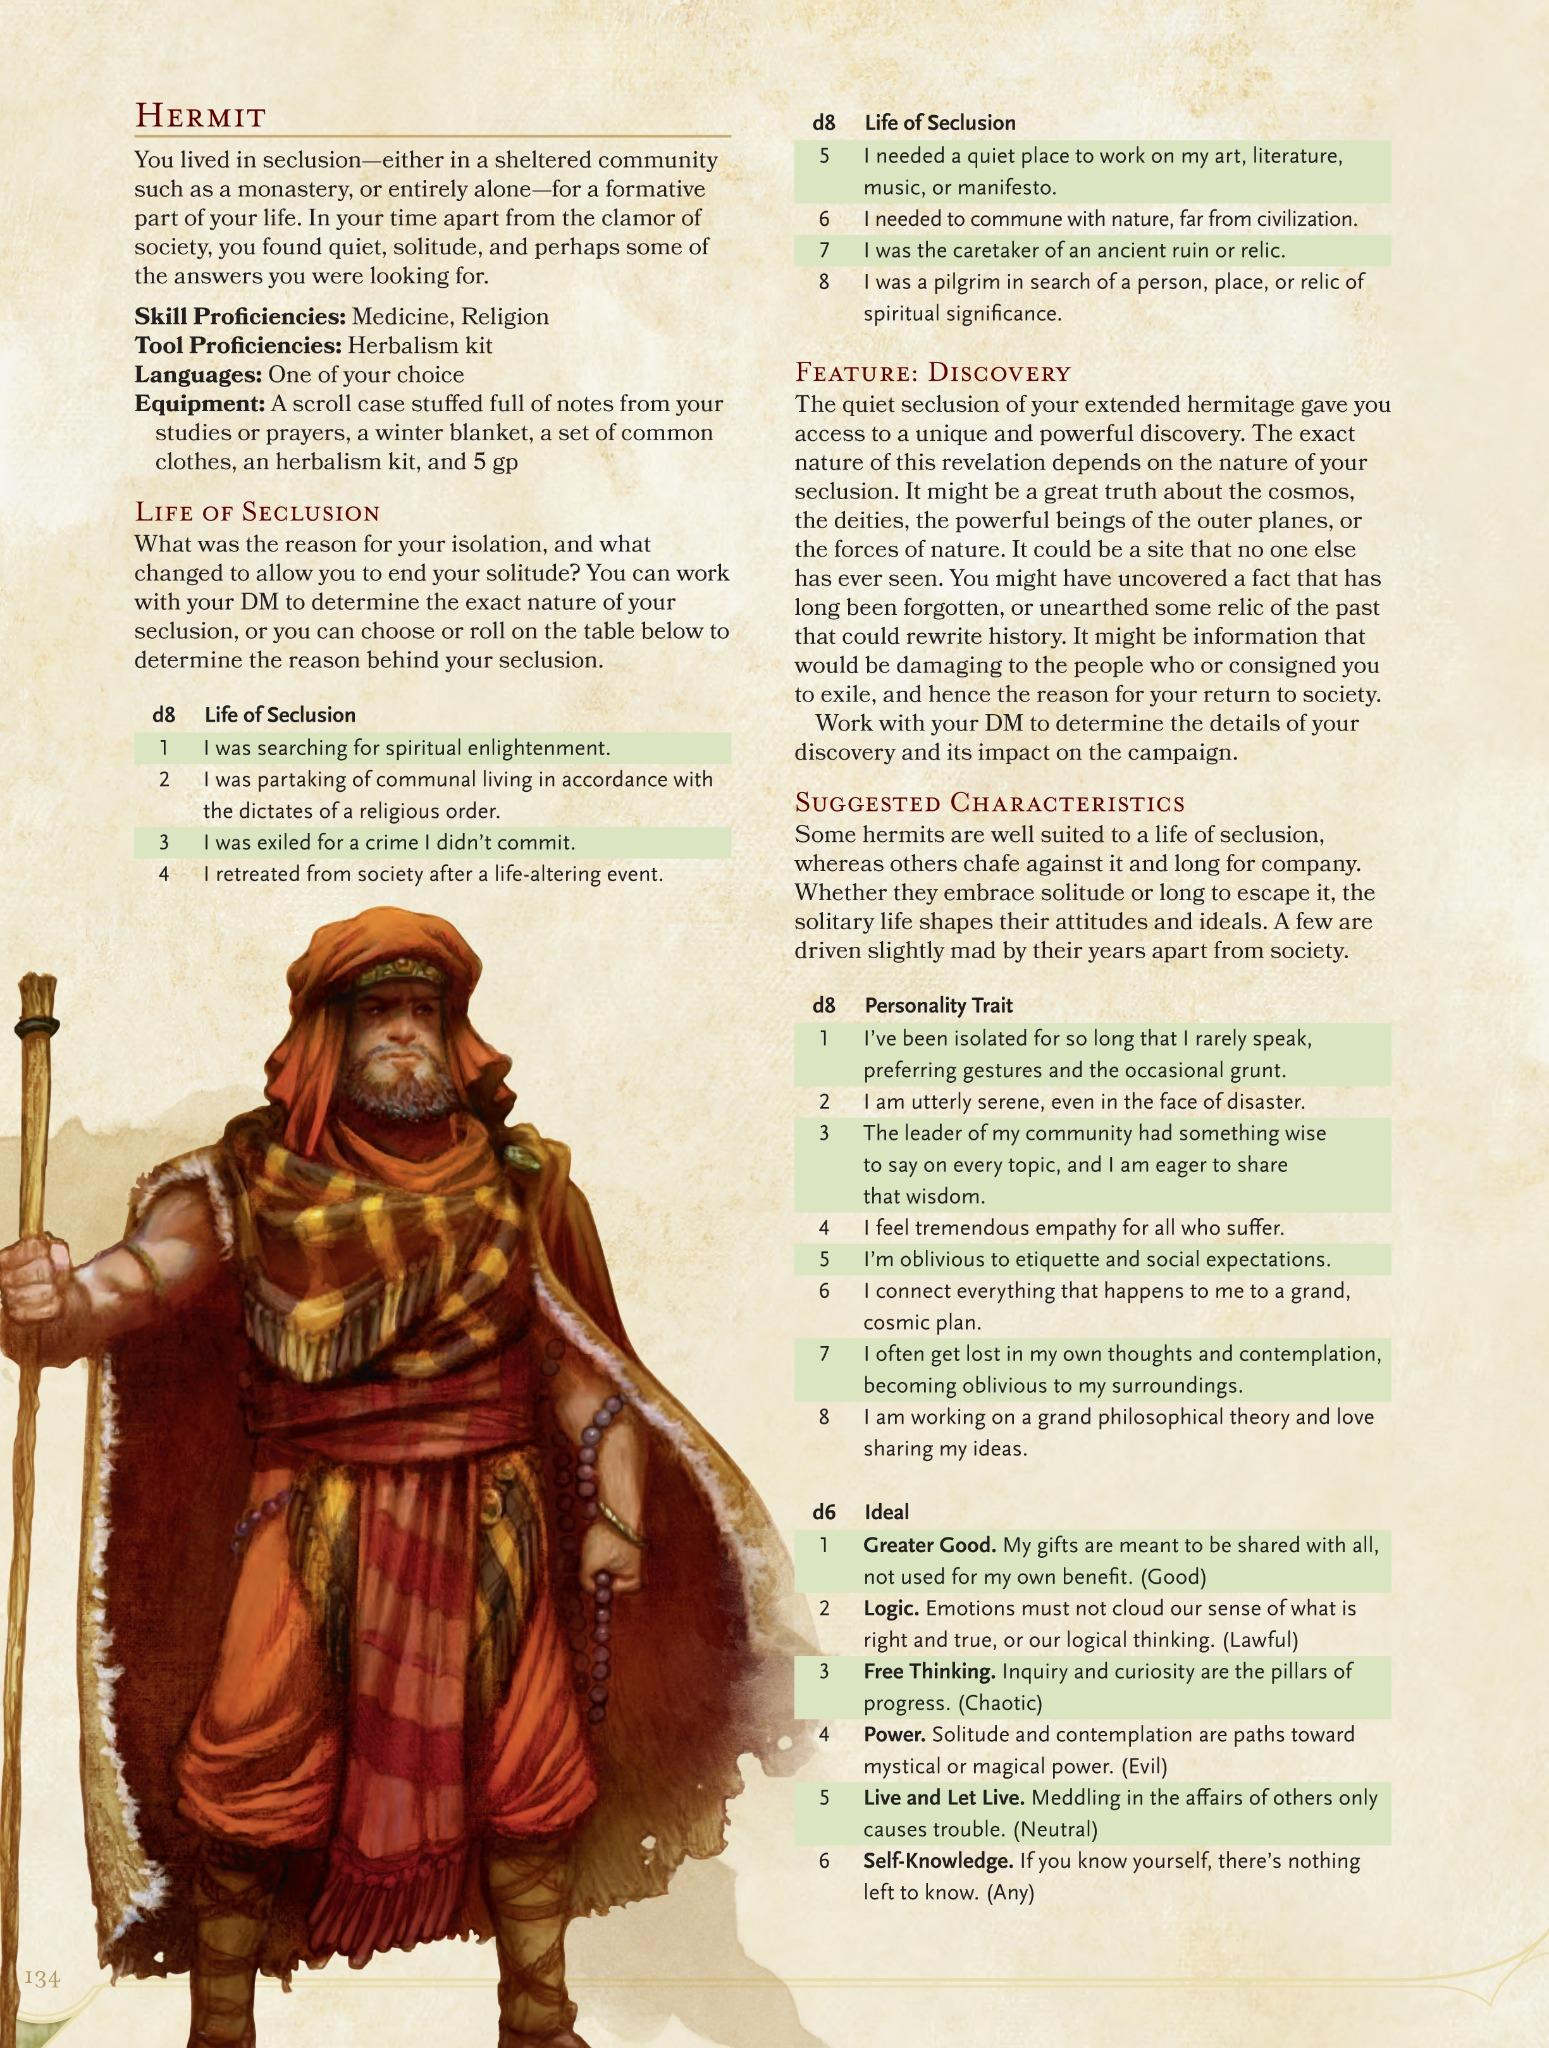 The hermit makes a rare appearance as we wrap up this week's #DnD PHB preview on backgrounds! http://t.co/KESA9zp70z